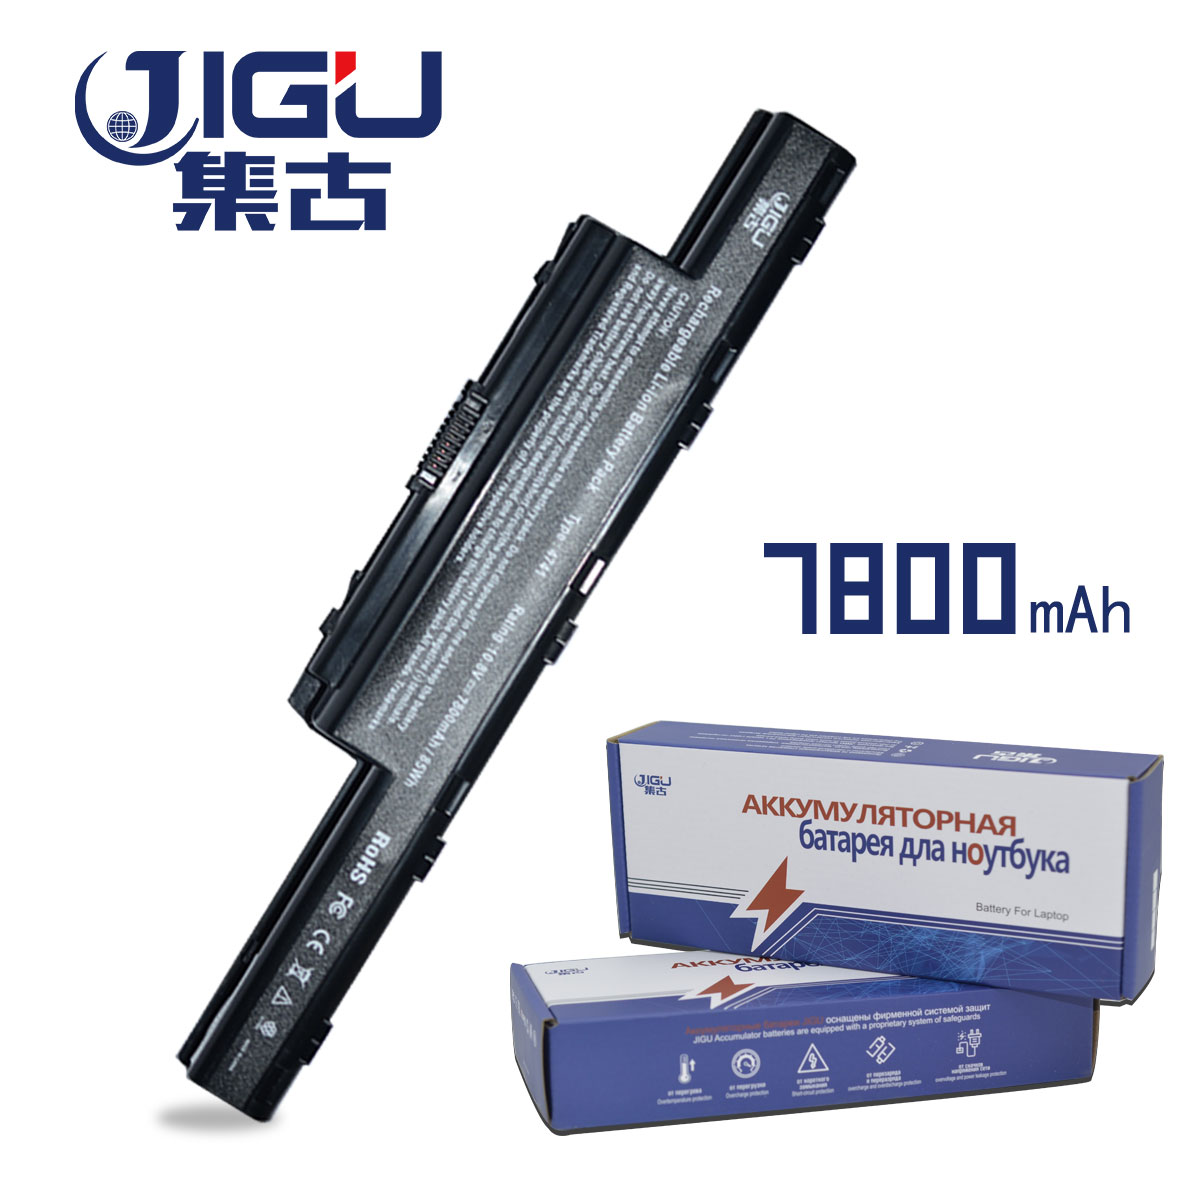 JIGU 7750g NEW Laptop Battery For Acer Aspire V3 V3-471G V3-551G V3-571G V3-771G E1 E1-421 E1-431 E1-471 E1-531 E1-571 Series free shipping 10pcs ir2110s ir2110 sop 16